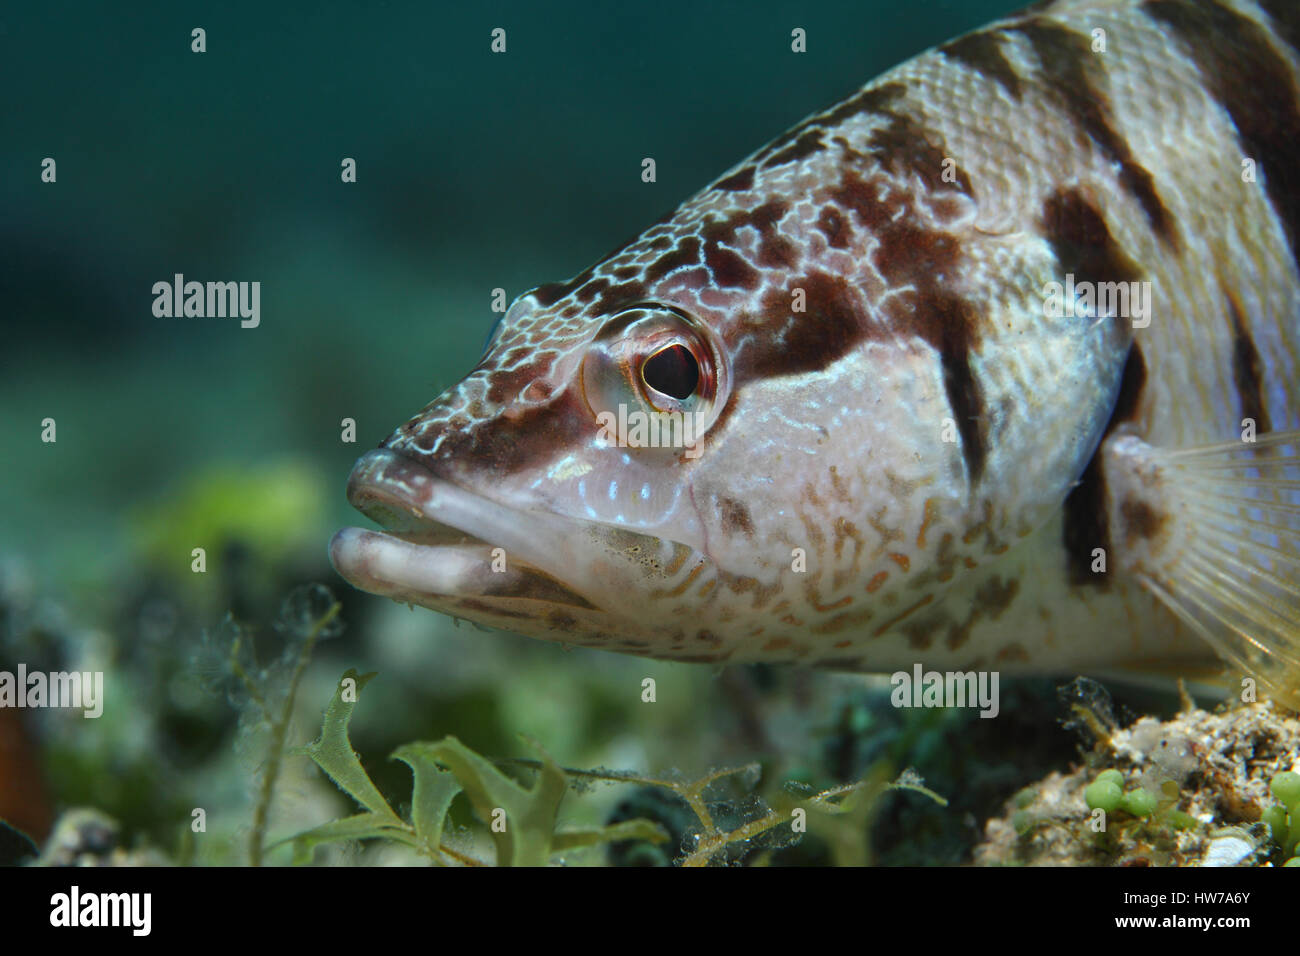 Painted comber (Serranus scriba) underwater in the Mediterranean Sea - Stock Image